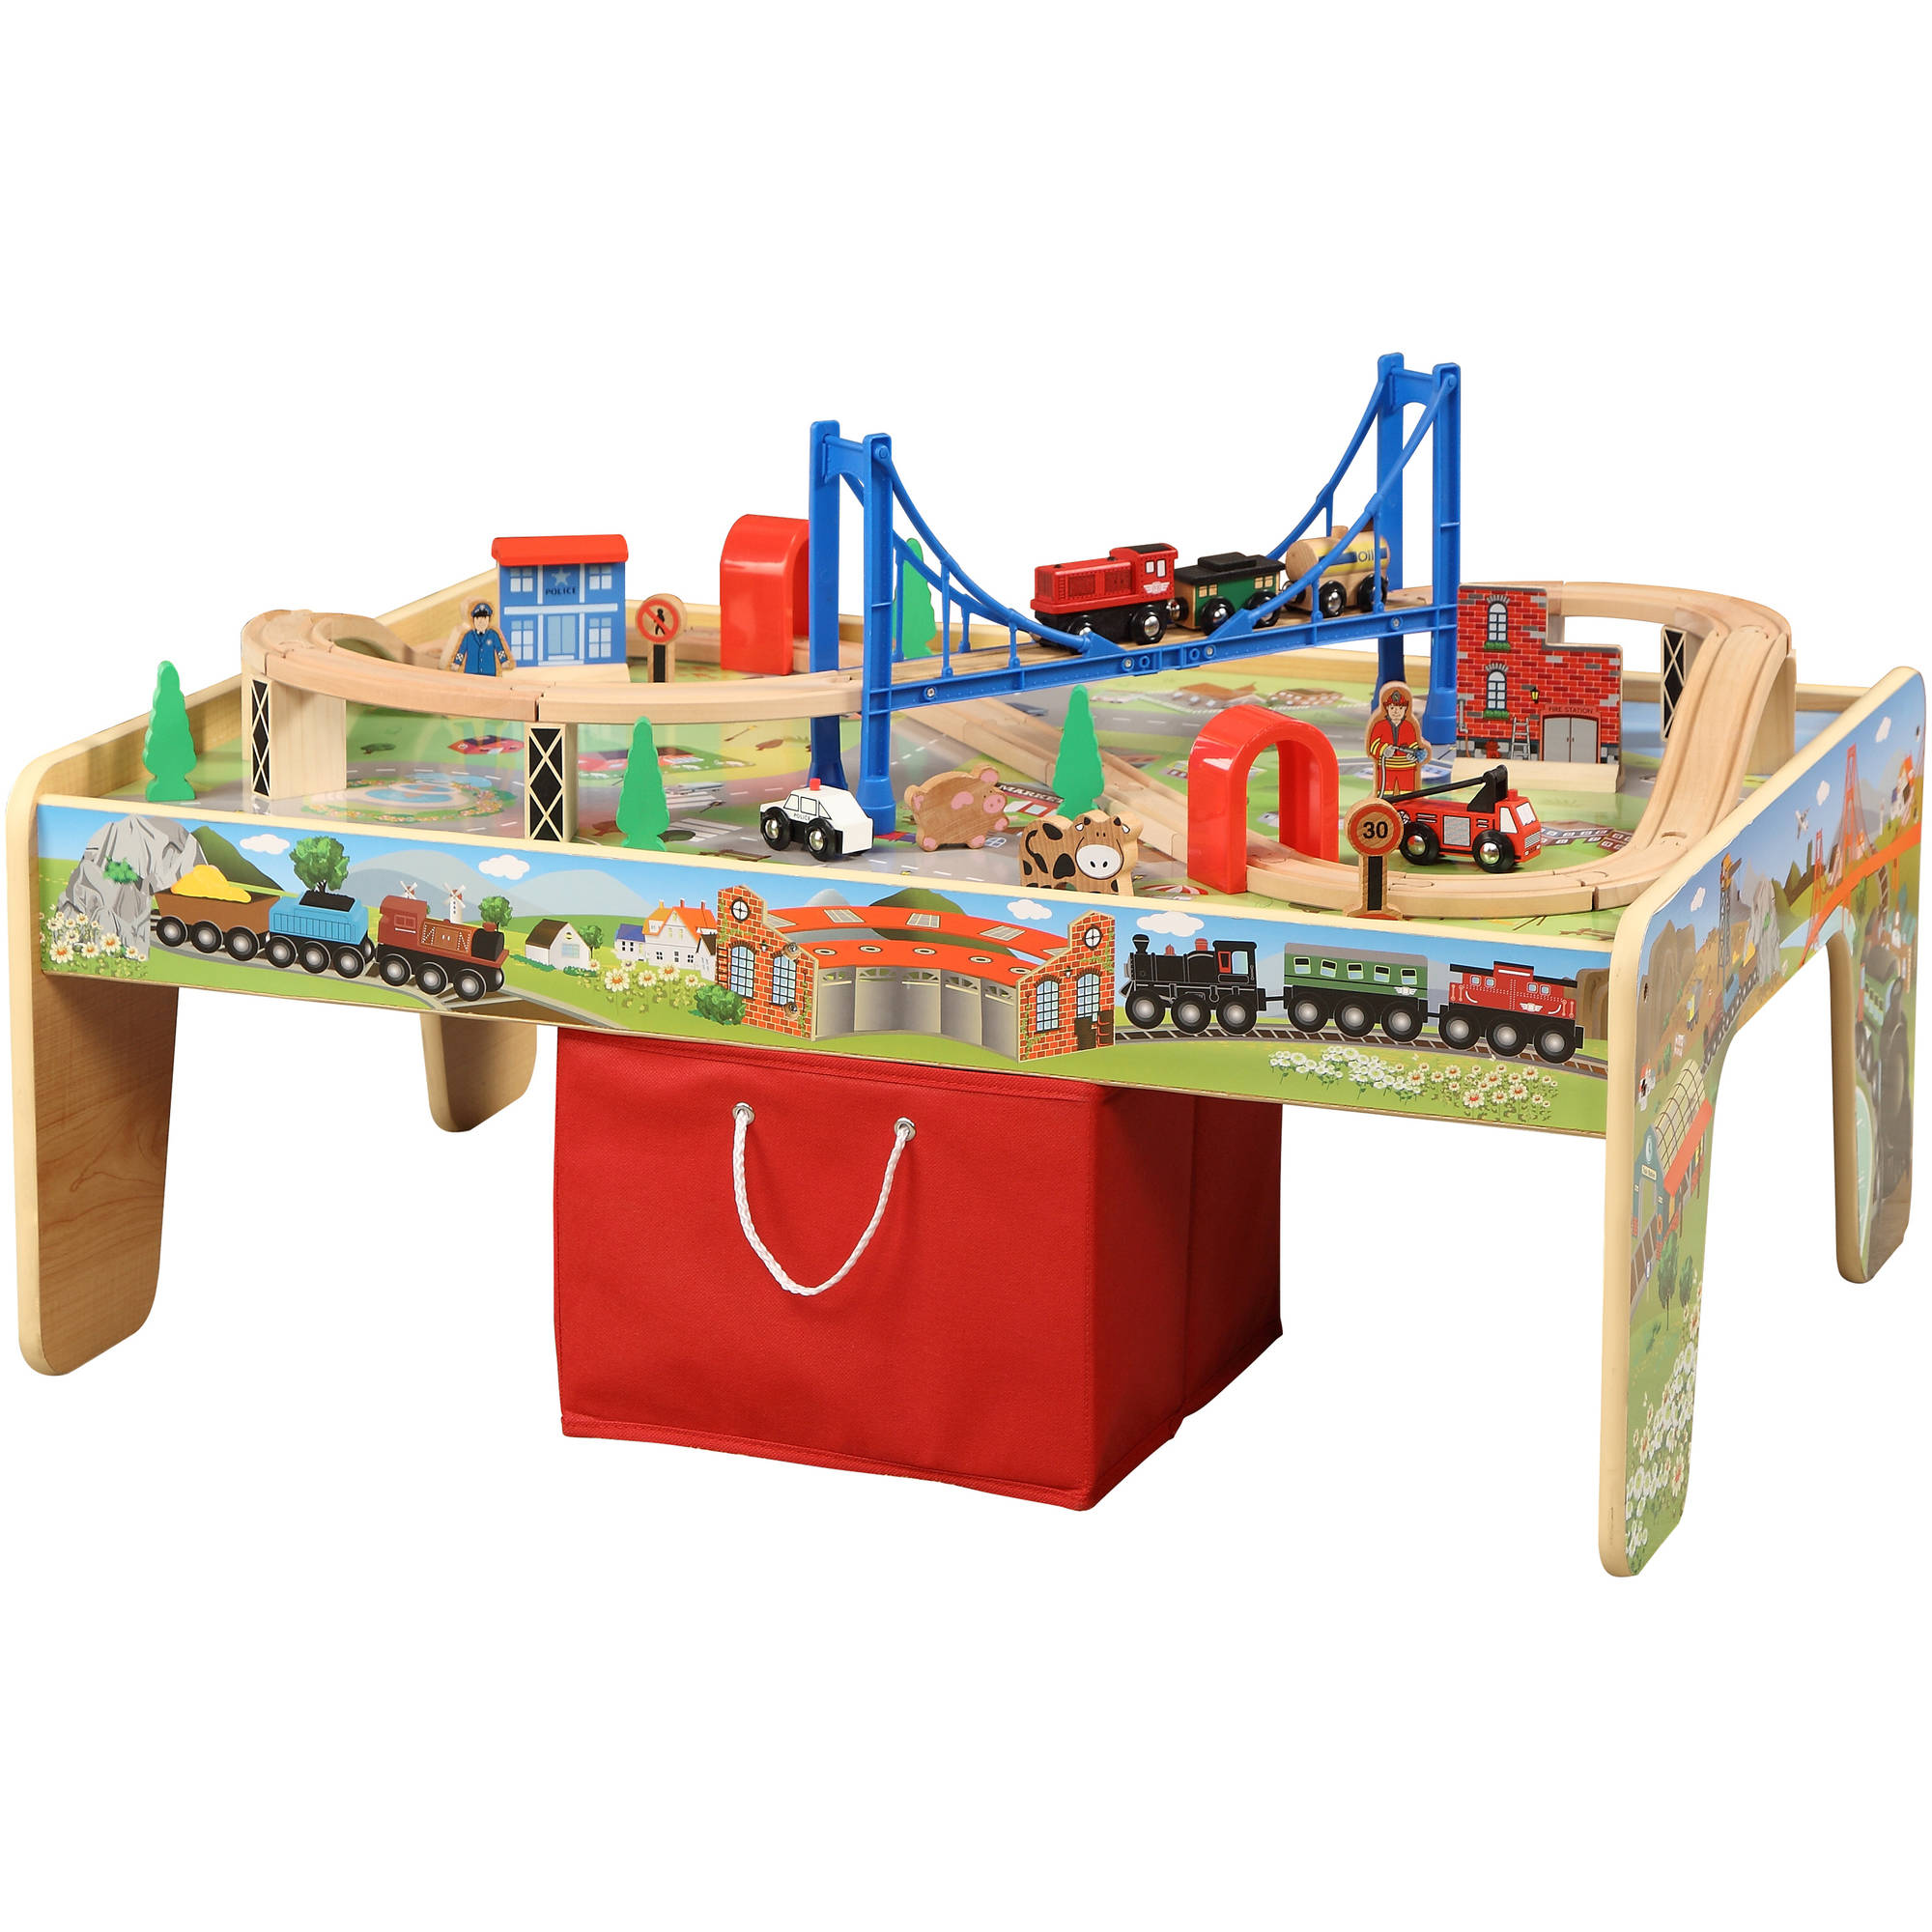 50-Piece Train Set with 2-in-1 Activity Table  sc 1 st  Walmart.com & 50-Piece Train Set with 2-in-1 Activity Table - Walmart.com